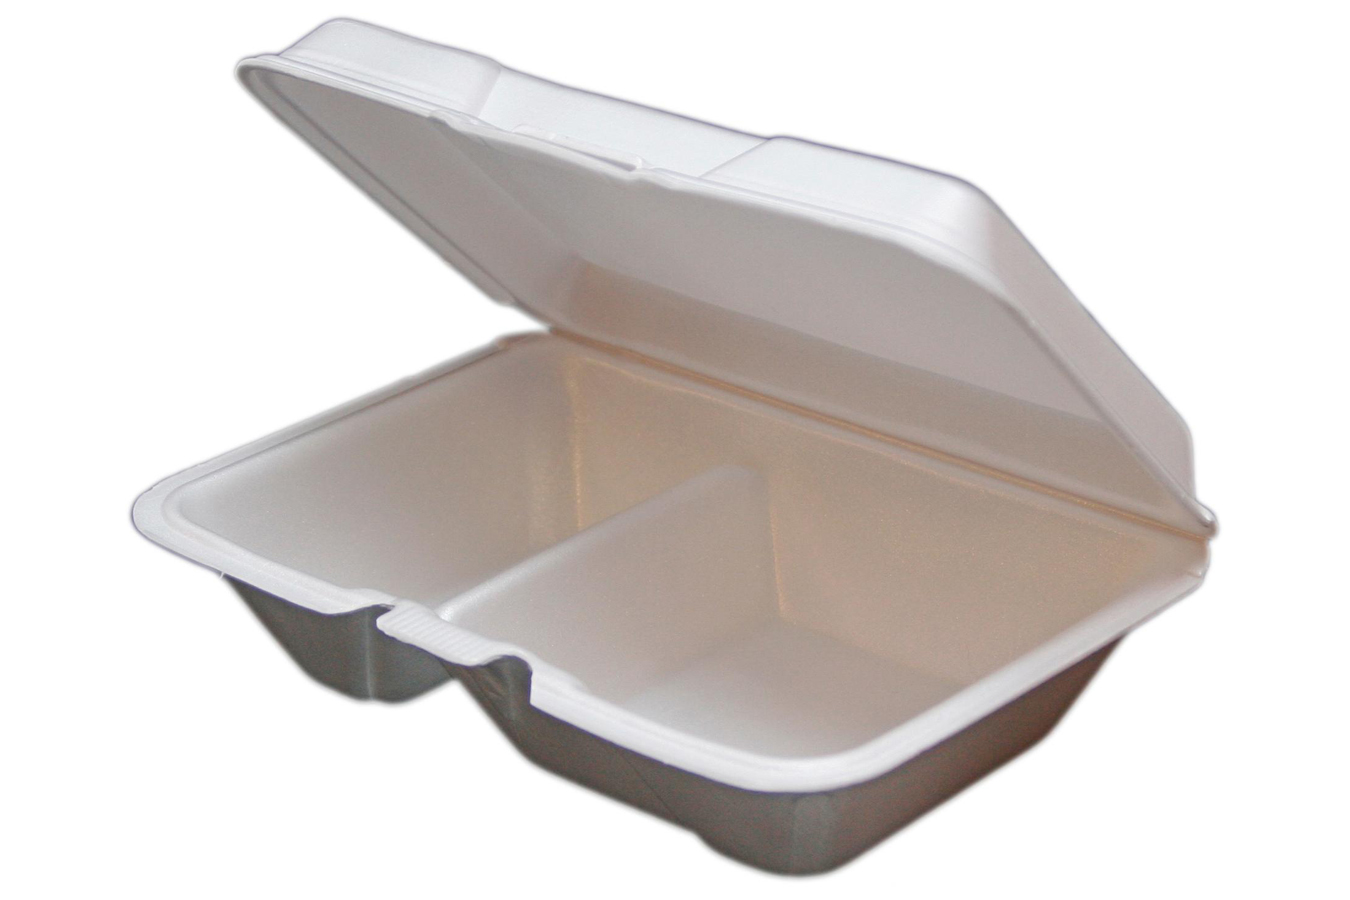 White non-vented hinged foam takeout disposable container with 2 compartments